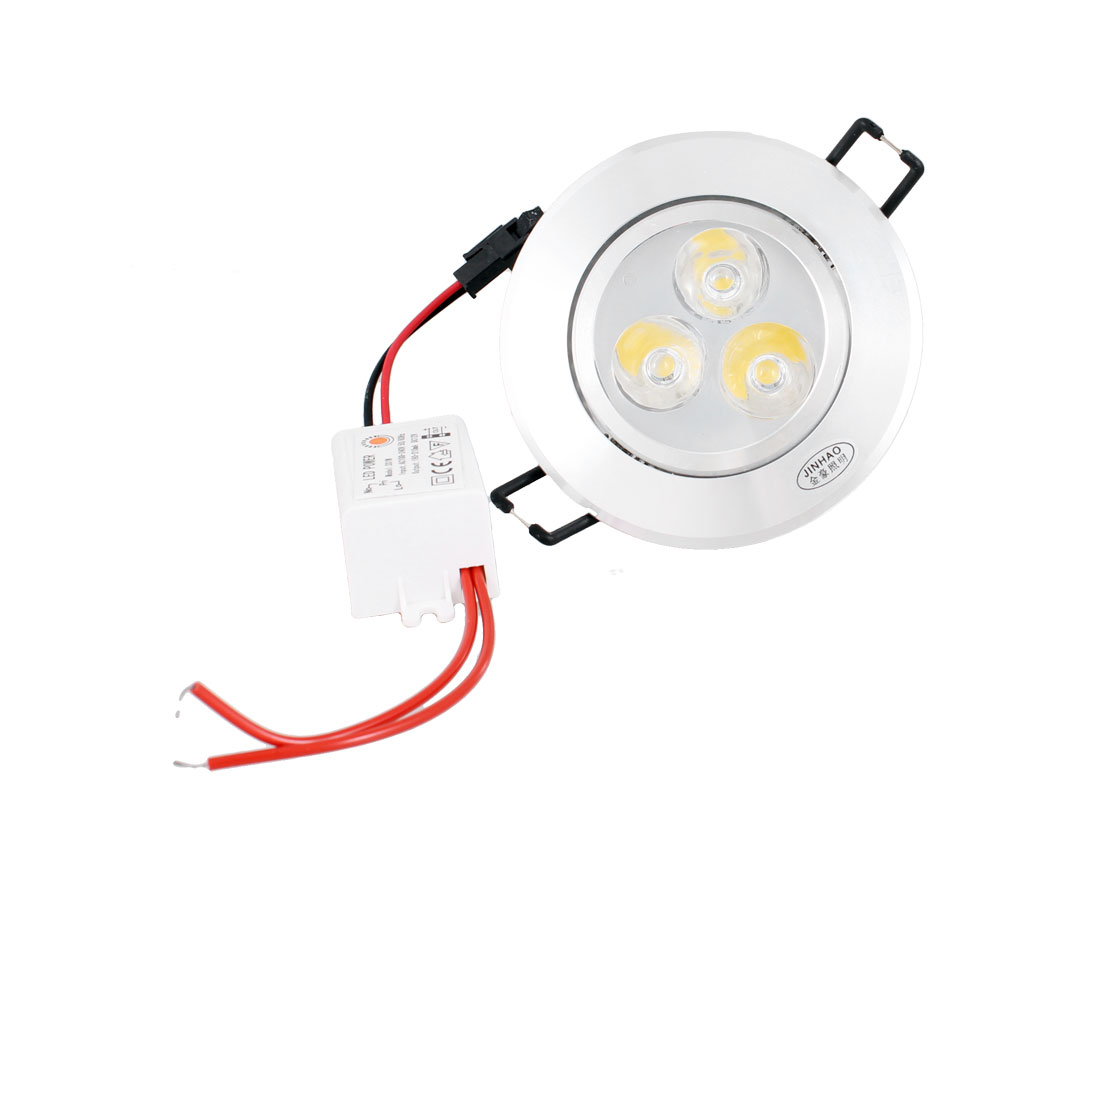 AC 100-240V 3W Cabinet 3 LED Recessed Ceiling Light Fixture Down Lamp Warm White